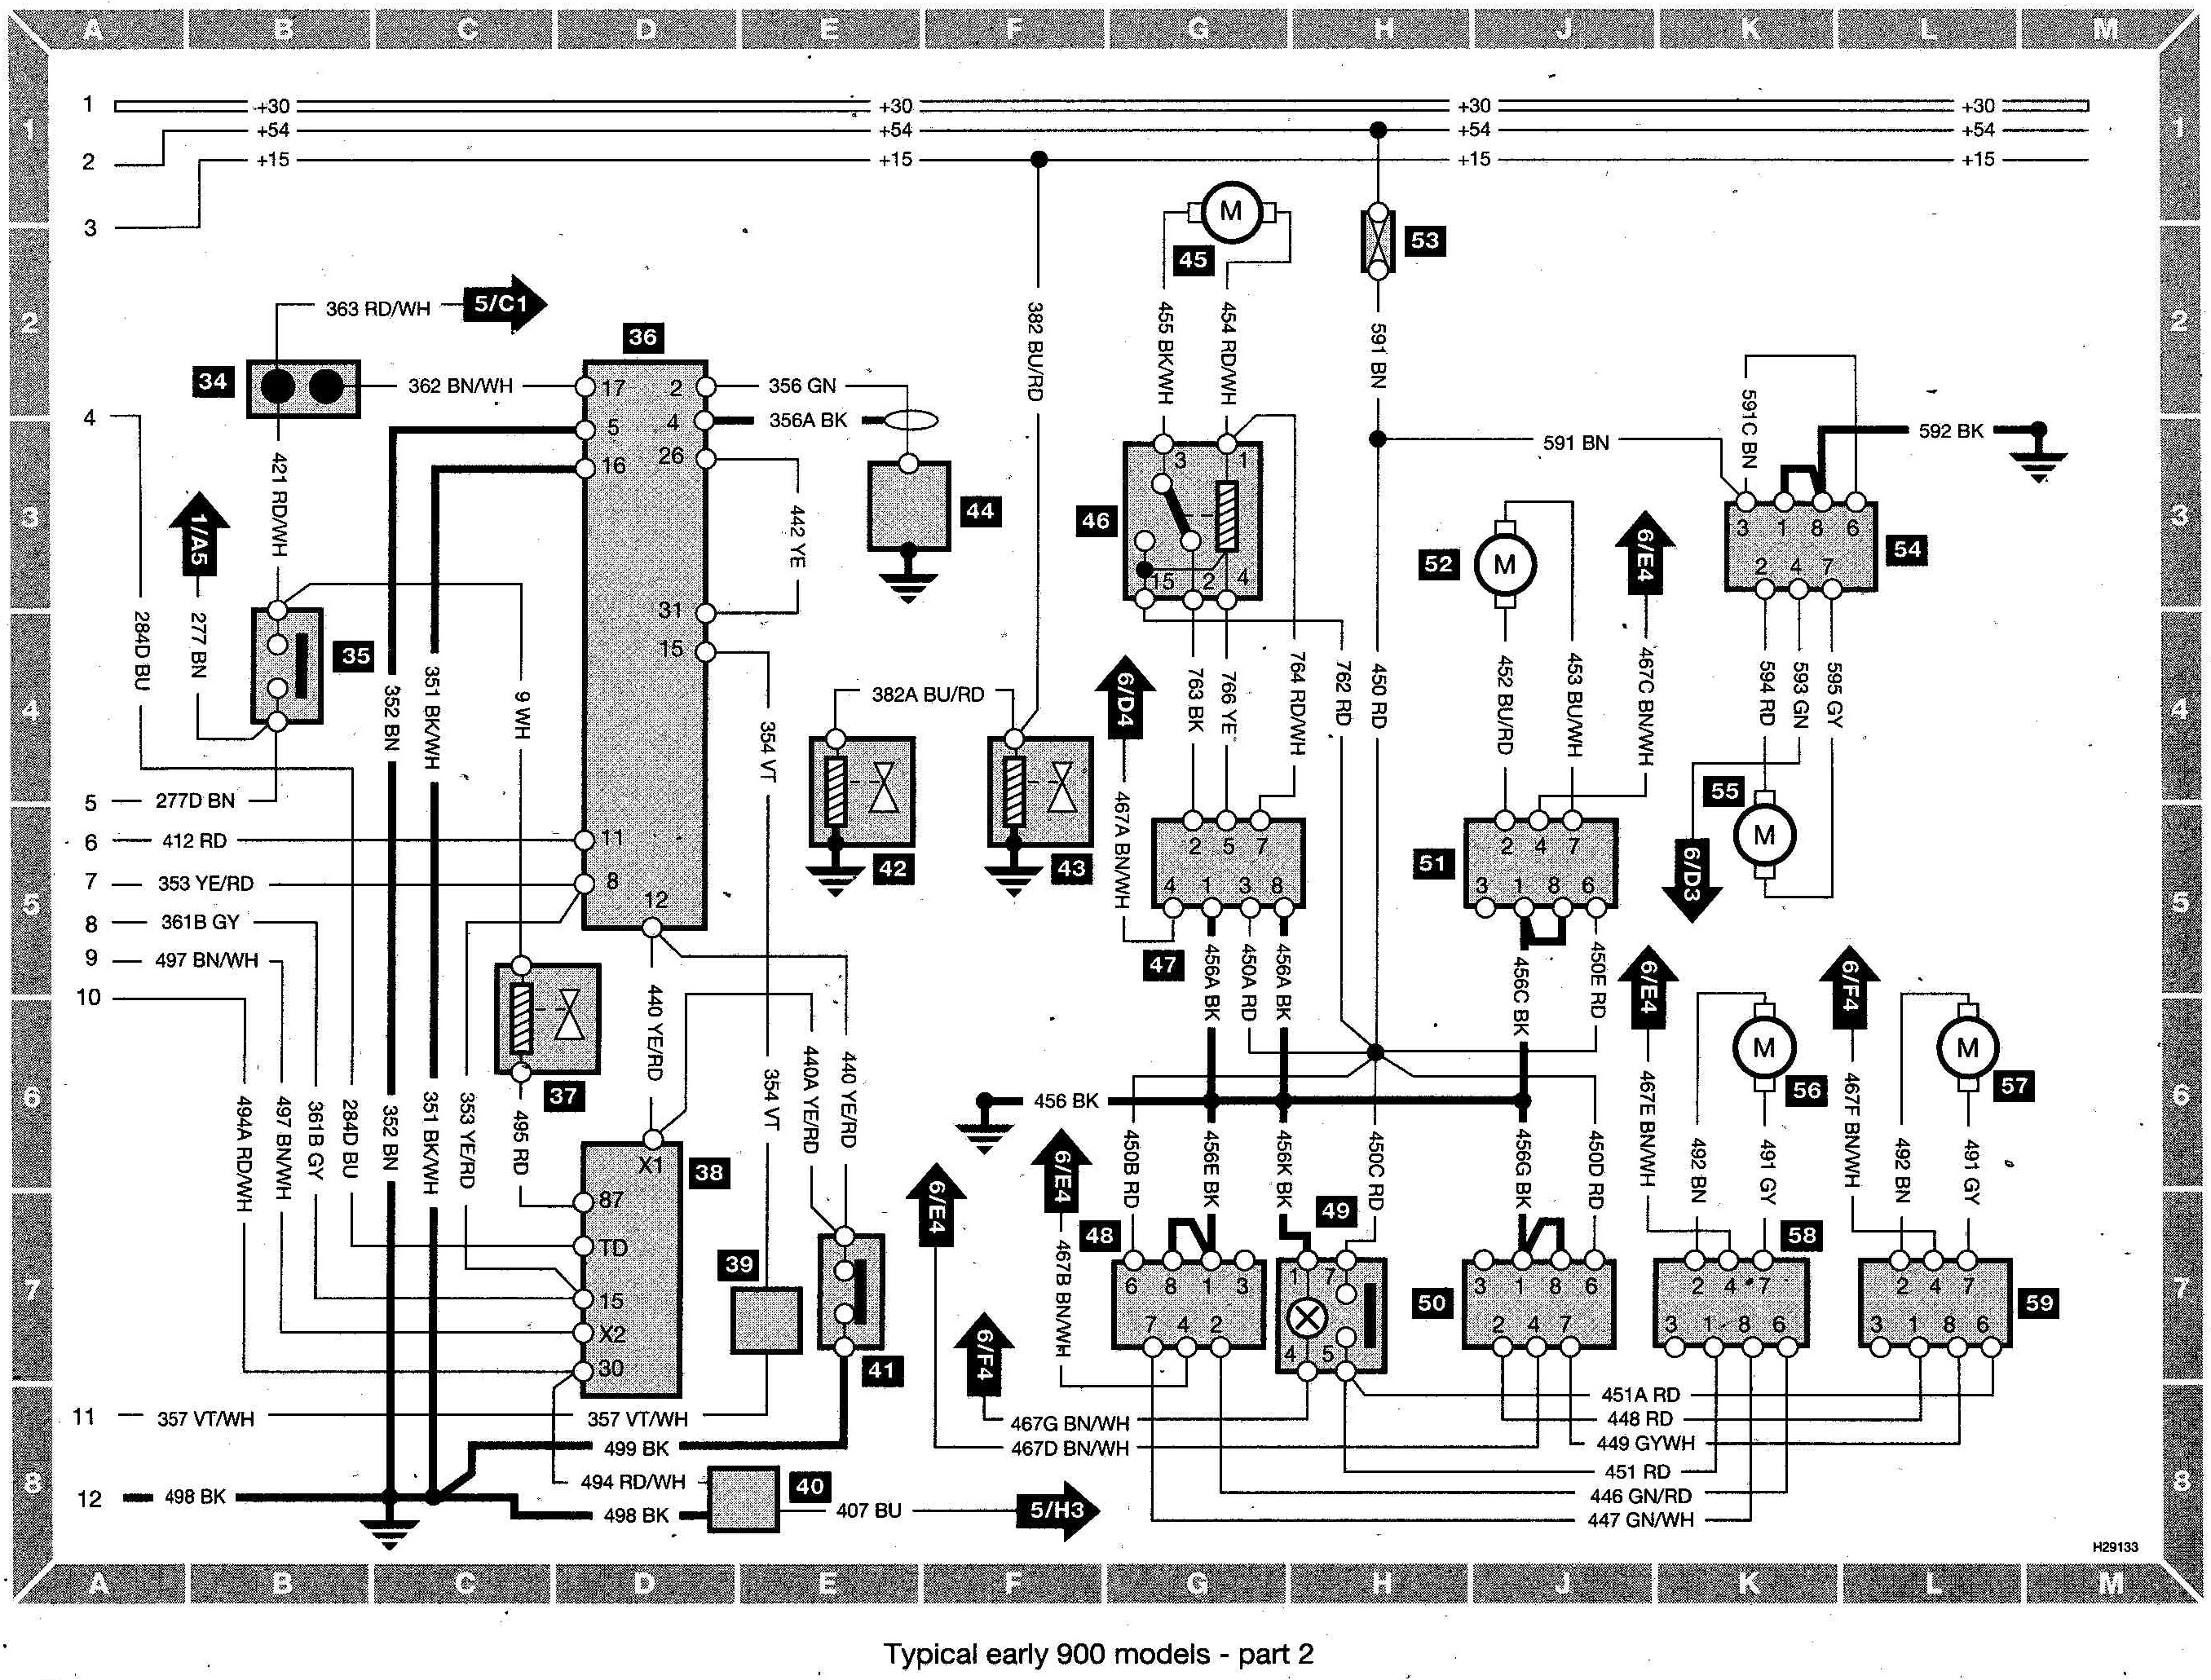 Saab 900 Wiring diagram (early models) part 2 saab 95 seat wiring diagram saab wiring diagrams instruction 2002 saab 93 radio wiring diagram at bayanpartner.co